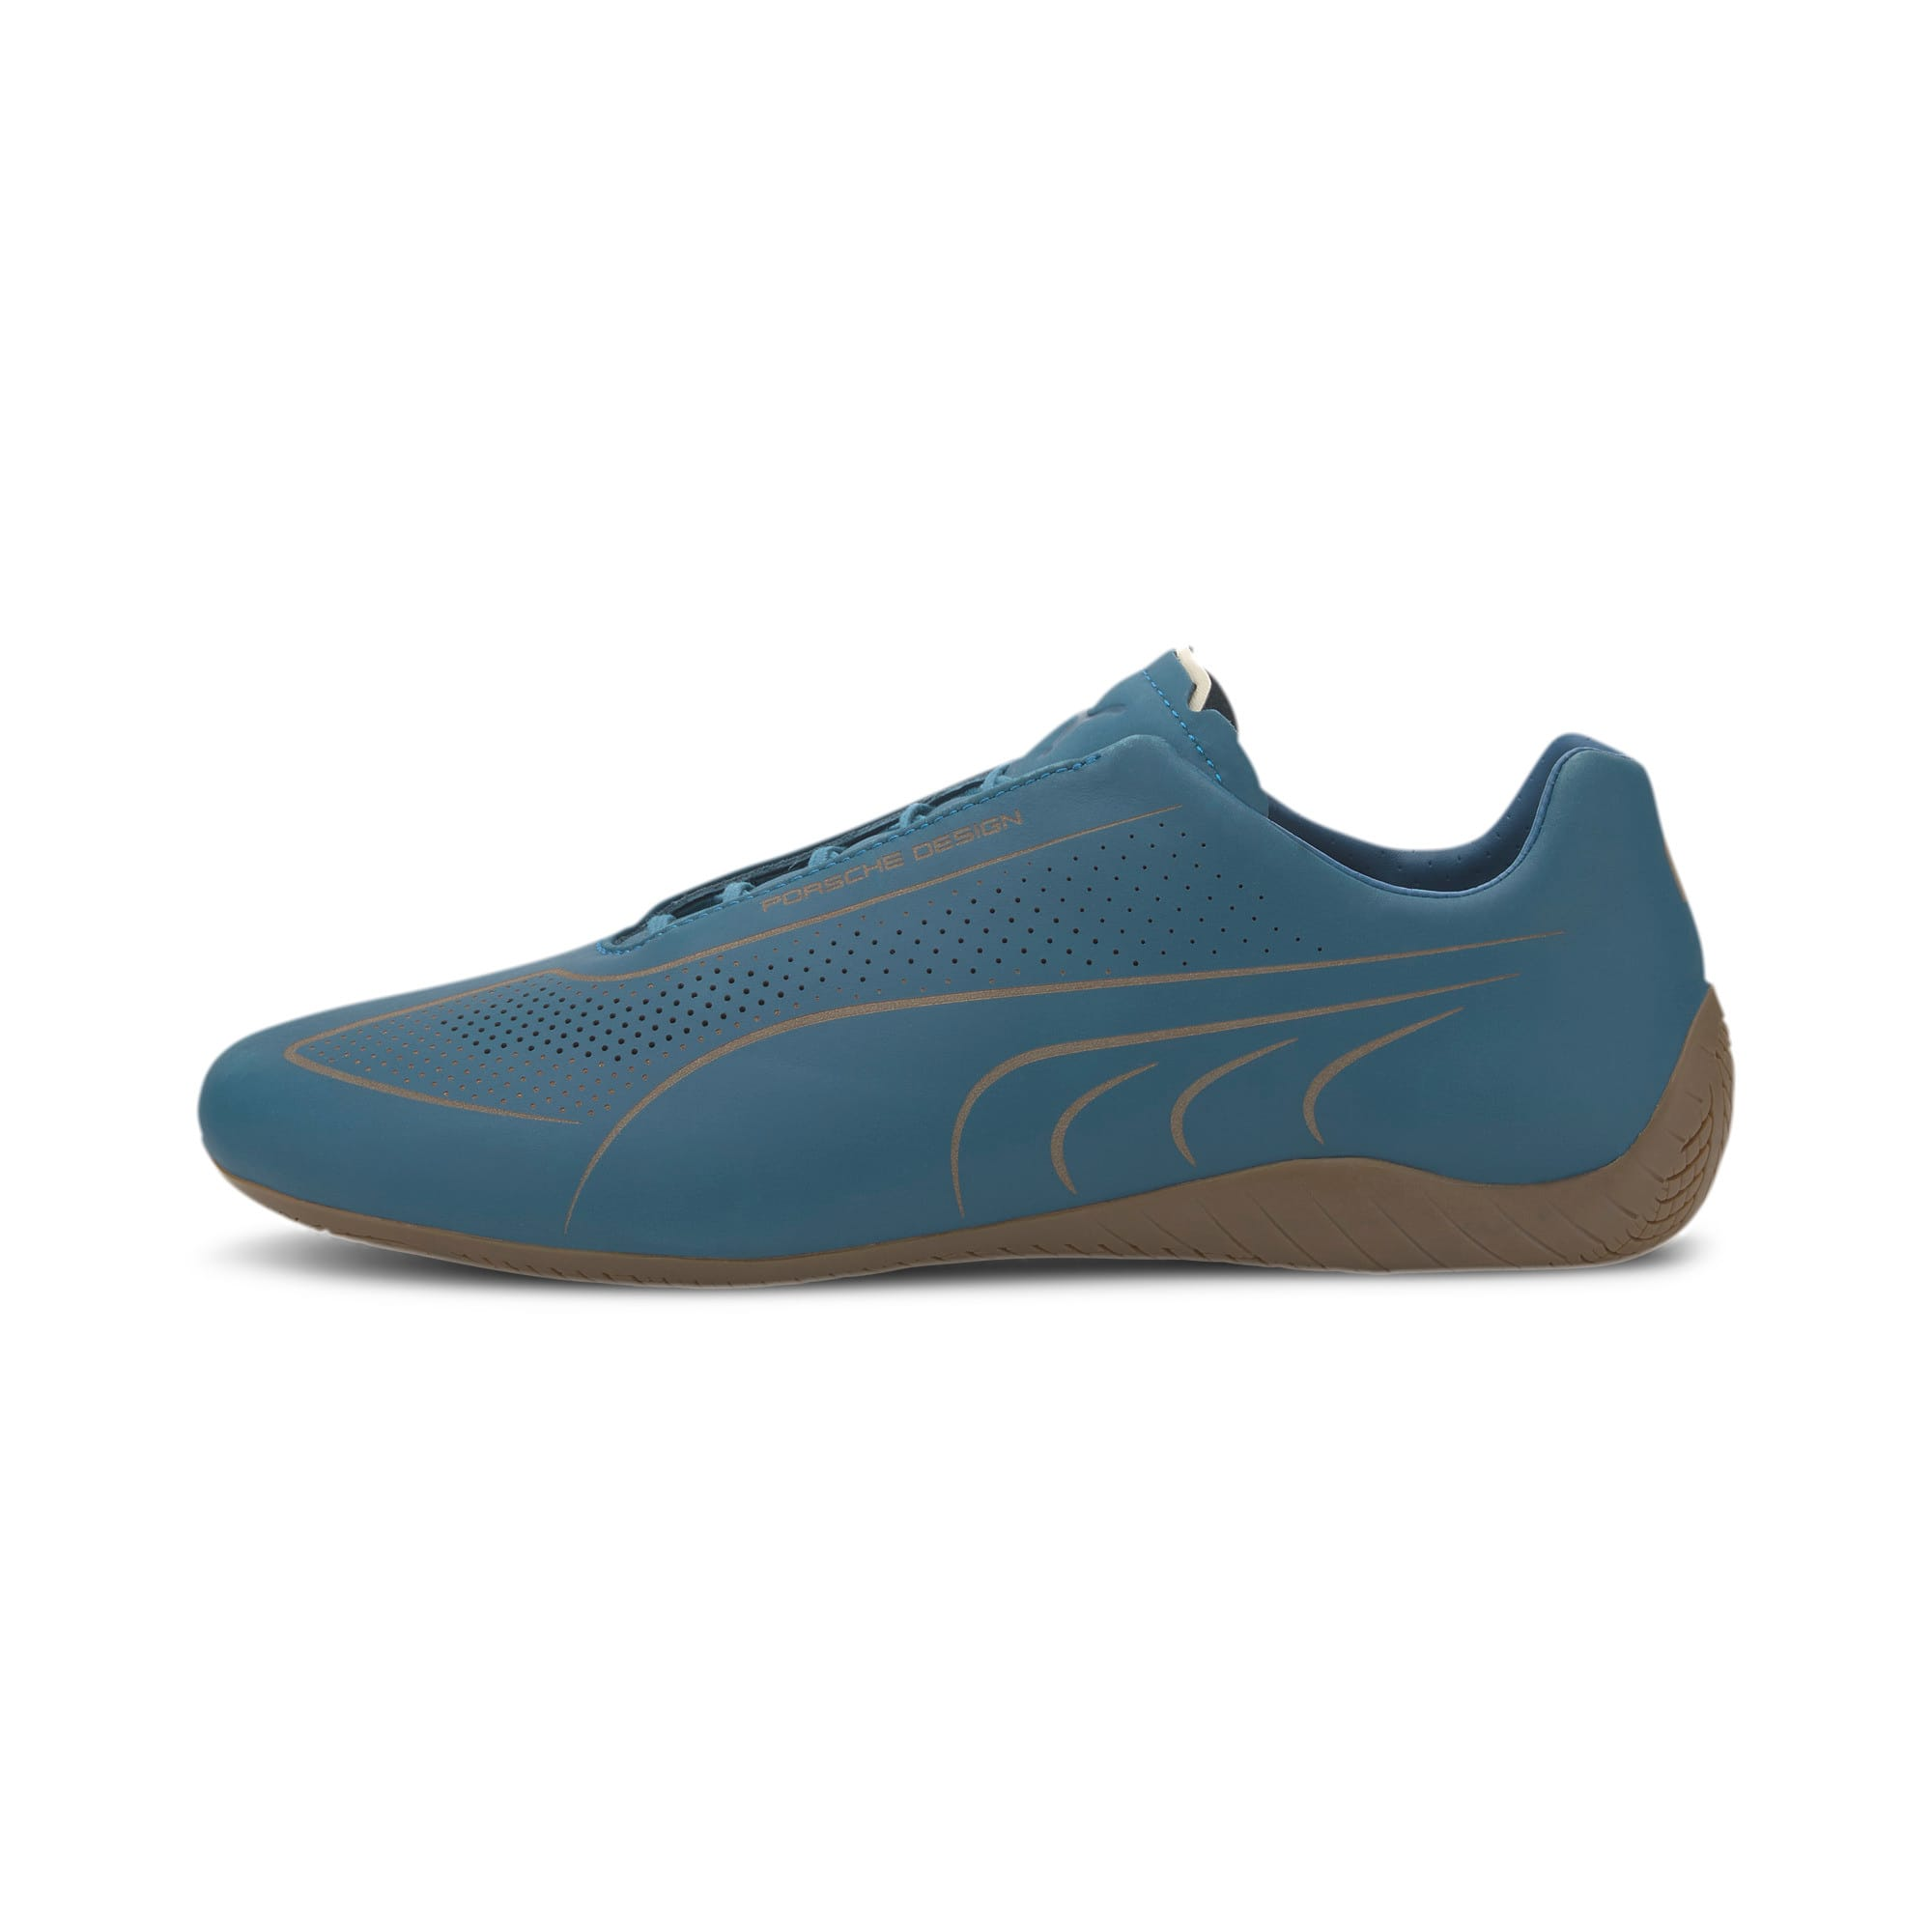 Thumbnail 1 of Porsche Design Speedcat Lux Men's Trainers, Moroccan Blue-Moroccan Blue, medium